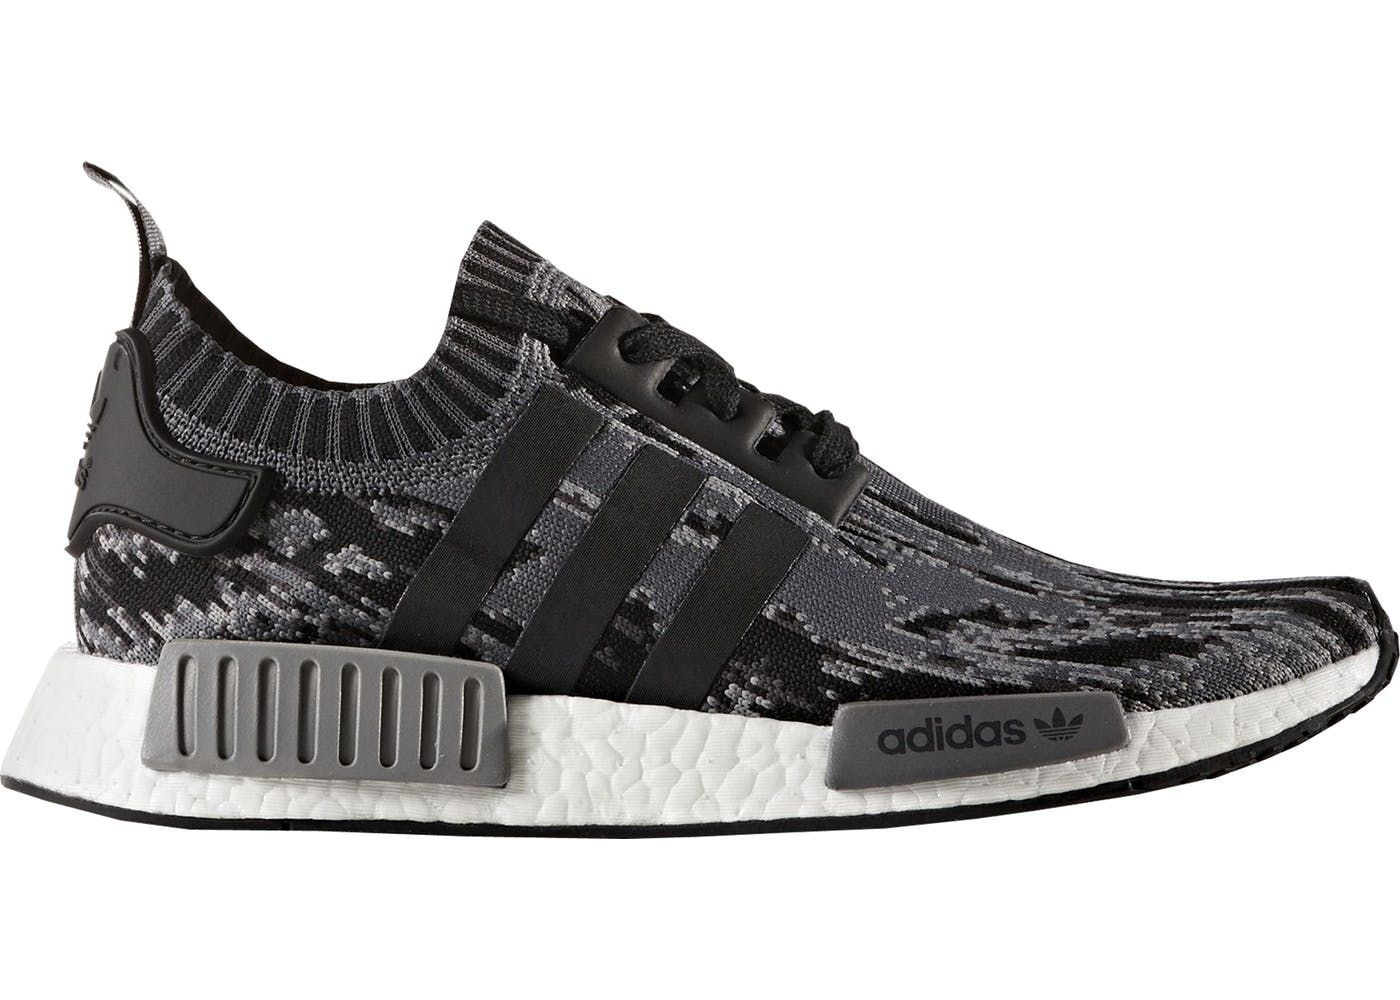 adidas NMD R1 Core Black Grey Three in 2020 Sneakers men